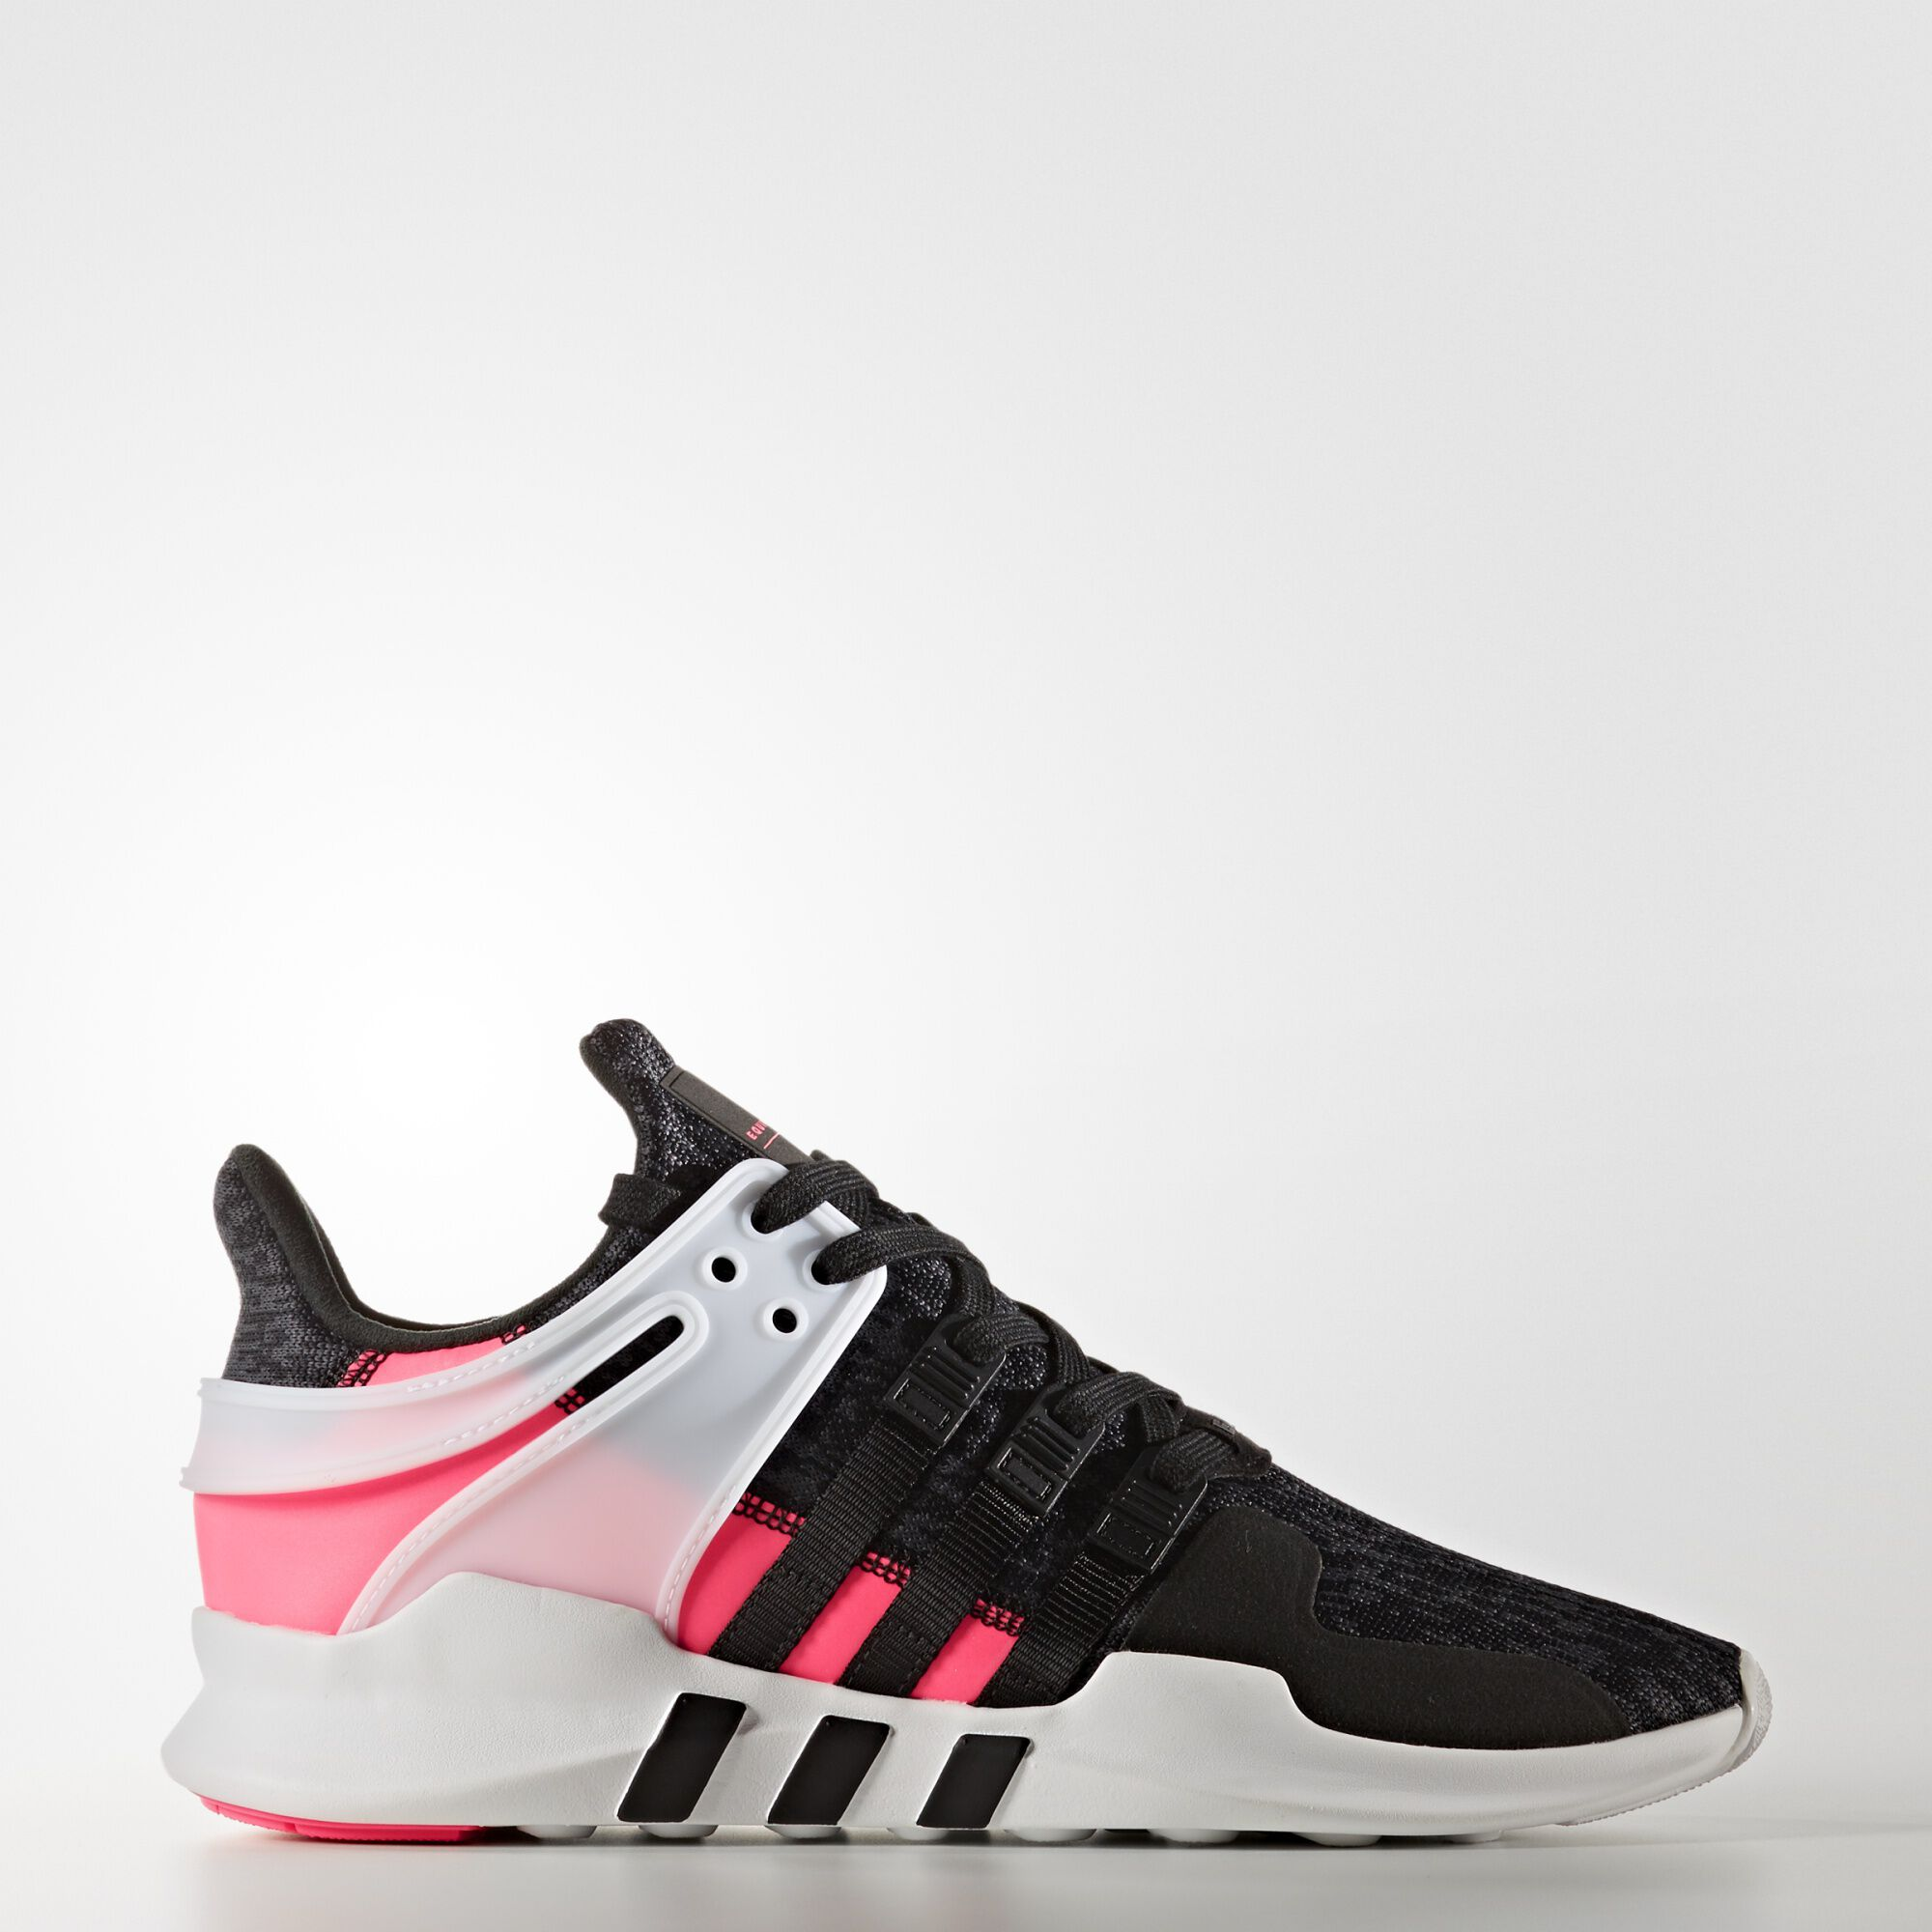 adidas EQT Support ADV (White/ Turbo Red) BB2791 ArthaYantra